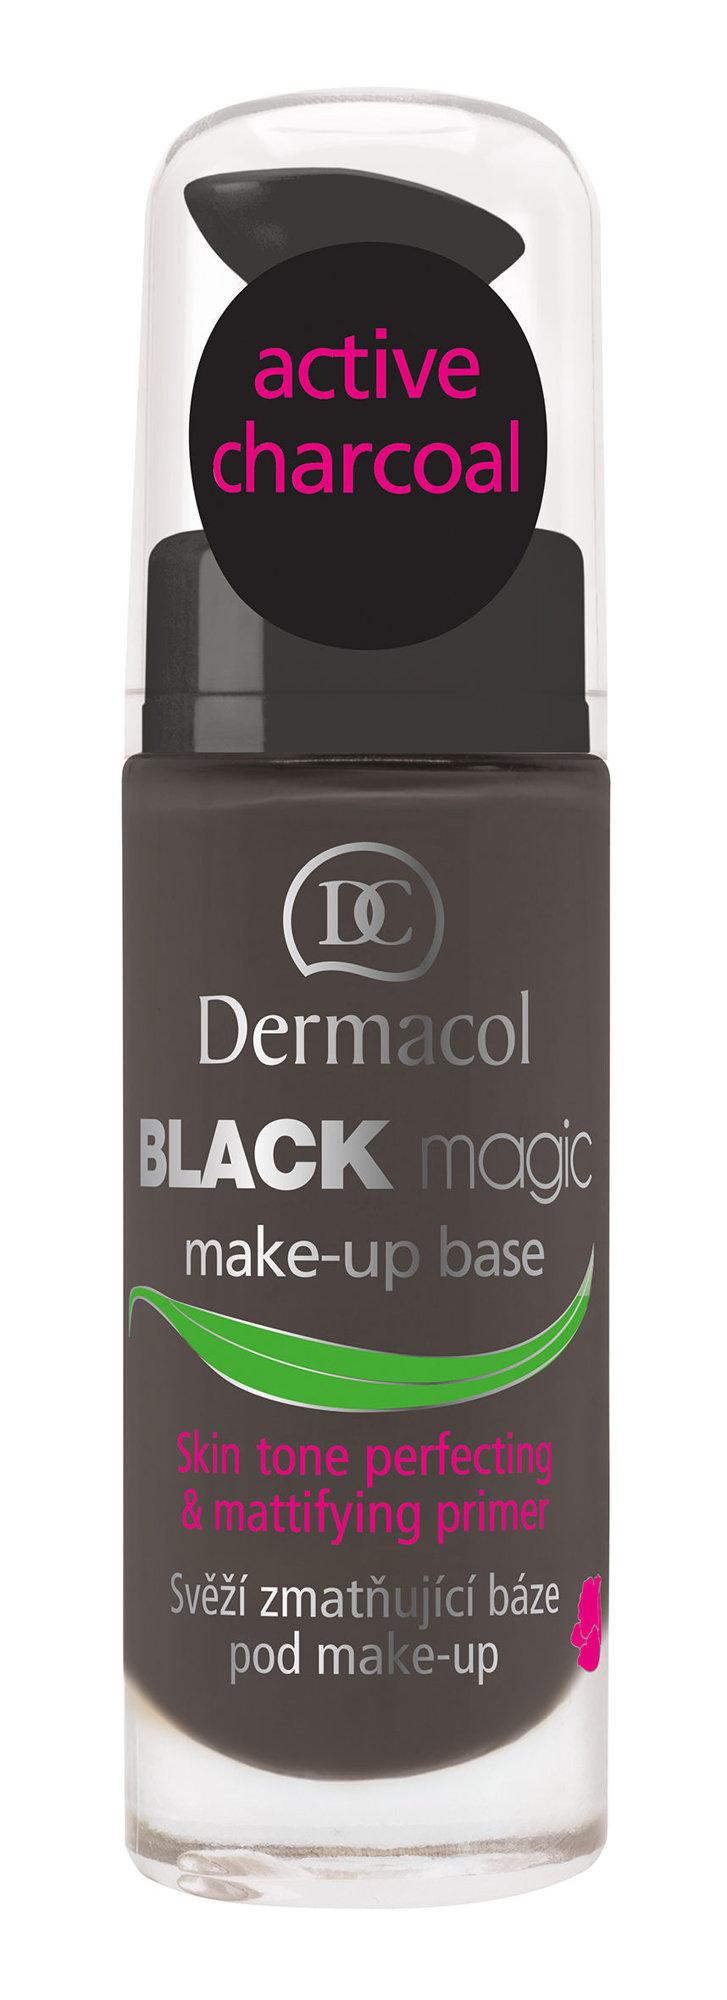 Dermacol Black Magic Makeup Primer 20ml